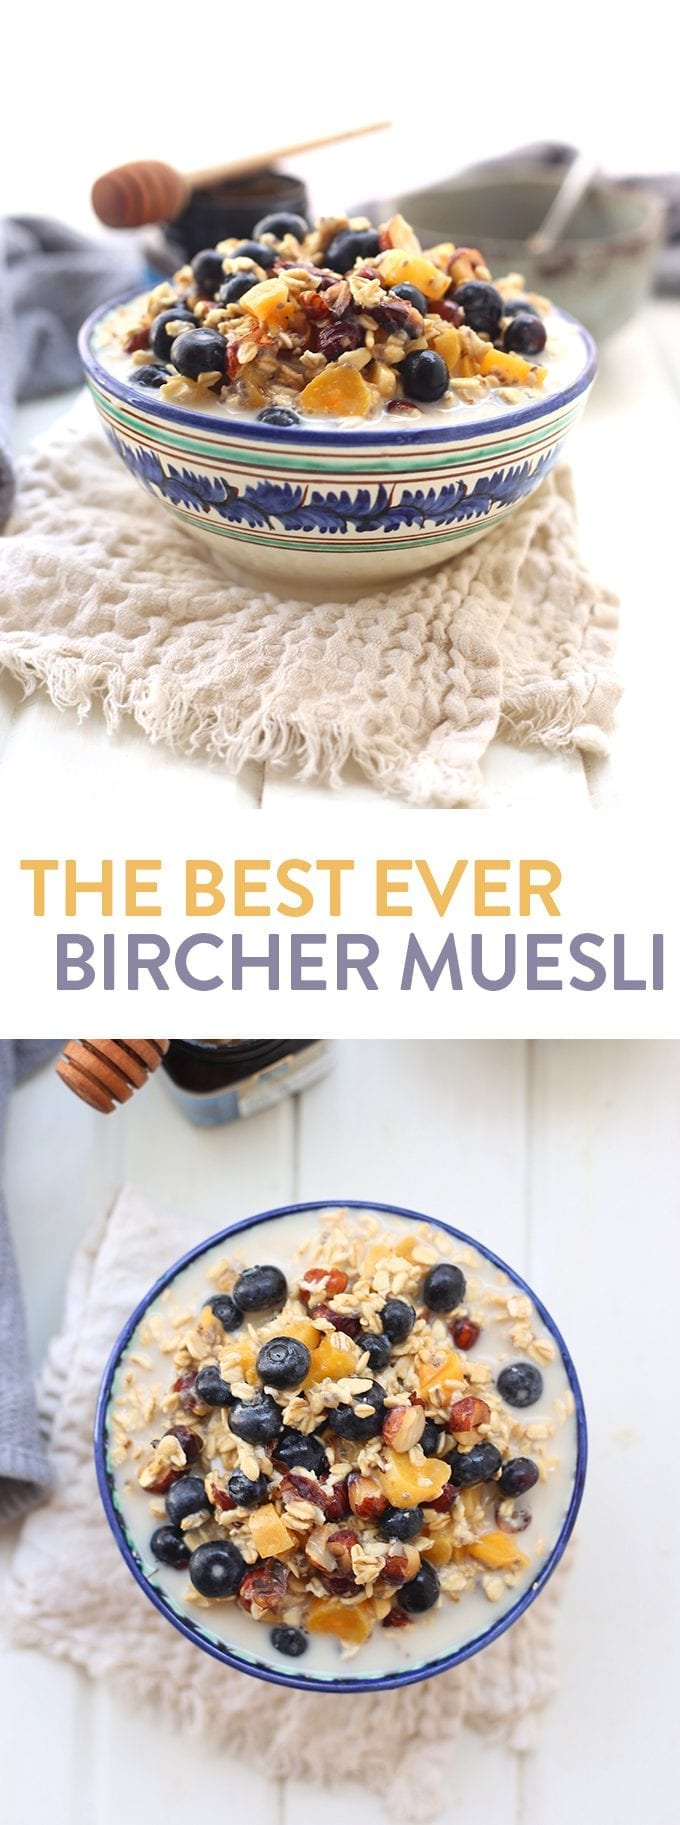 If overnight oats and cereal met and had a baby it would be called Bircher Muesli! This healthy breakfast recipe made with rolled oats, dried fruit, nuts and berries is the ultimate recipe for the most important meal of the day! #birchermuesli #healthybreakfast